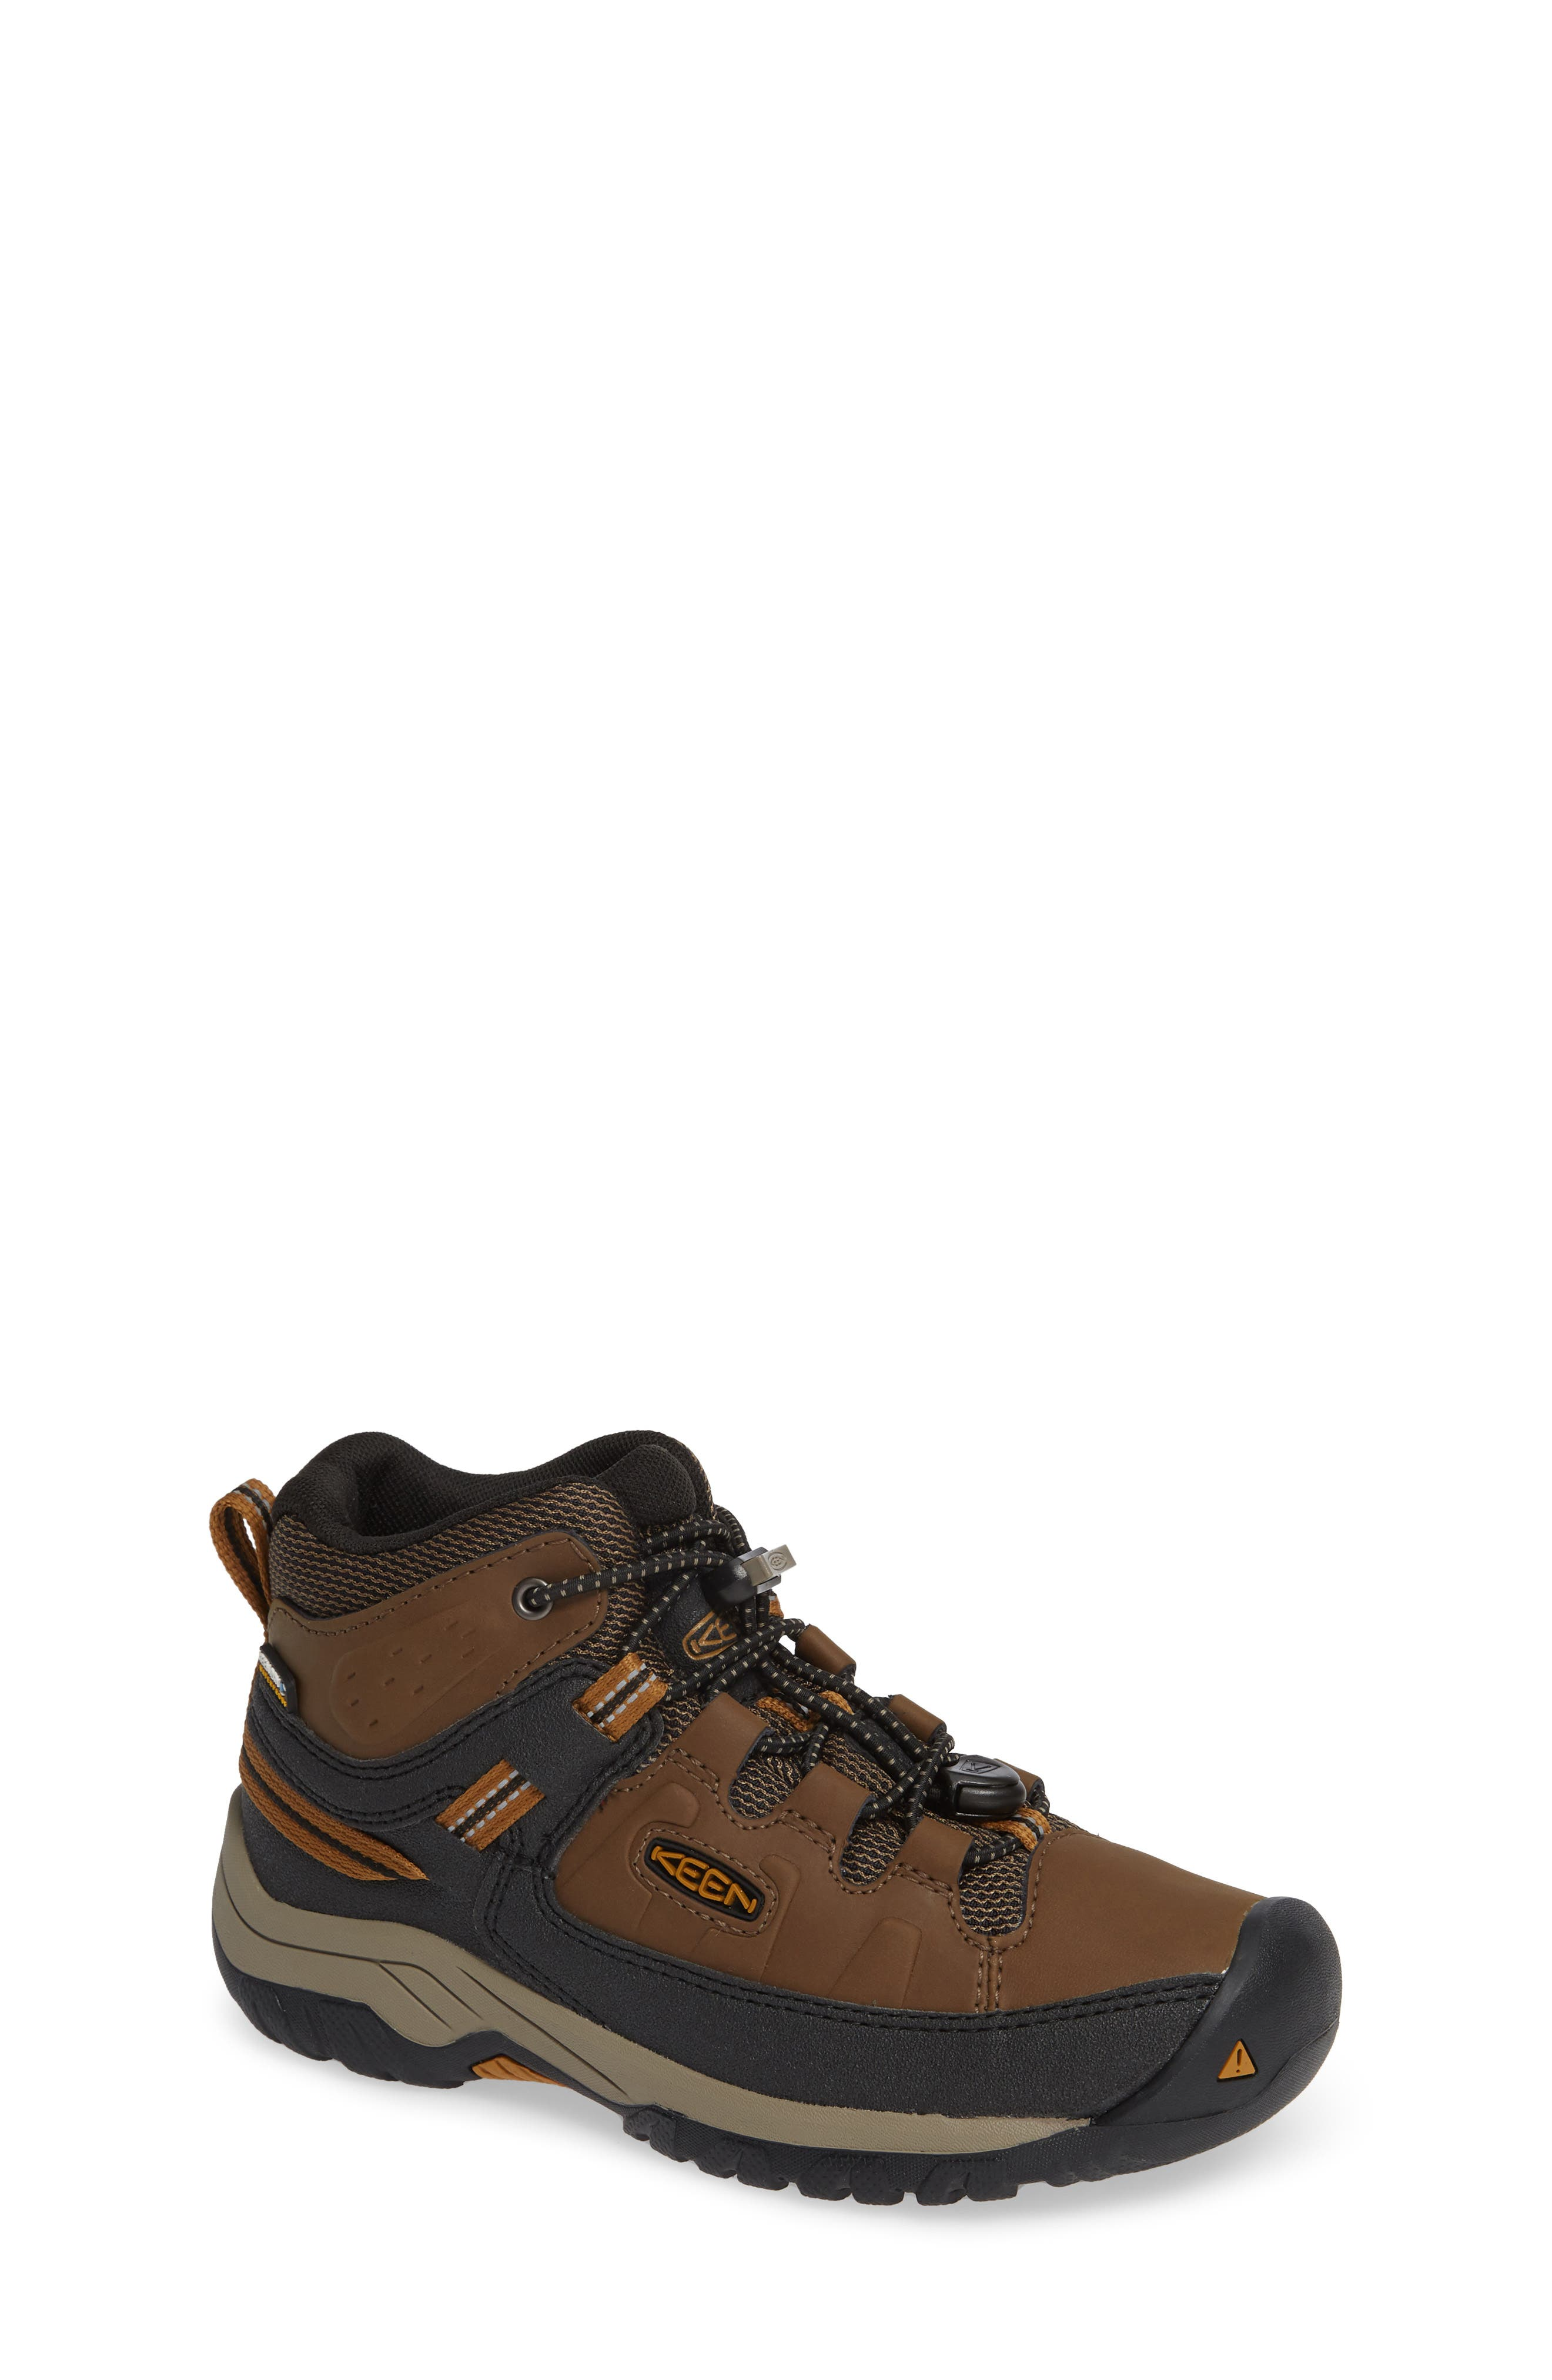 Targhee Mid Waterproof Hiking Boot,                         Main,                         color, DARK EARTH/ GOLDEN BROWN